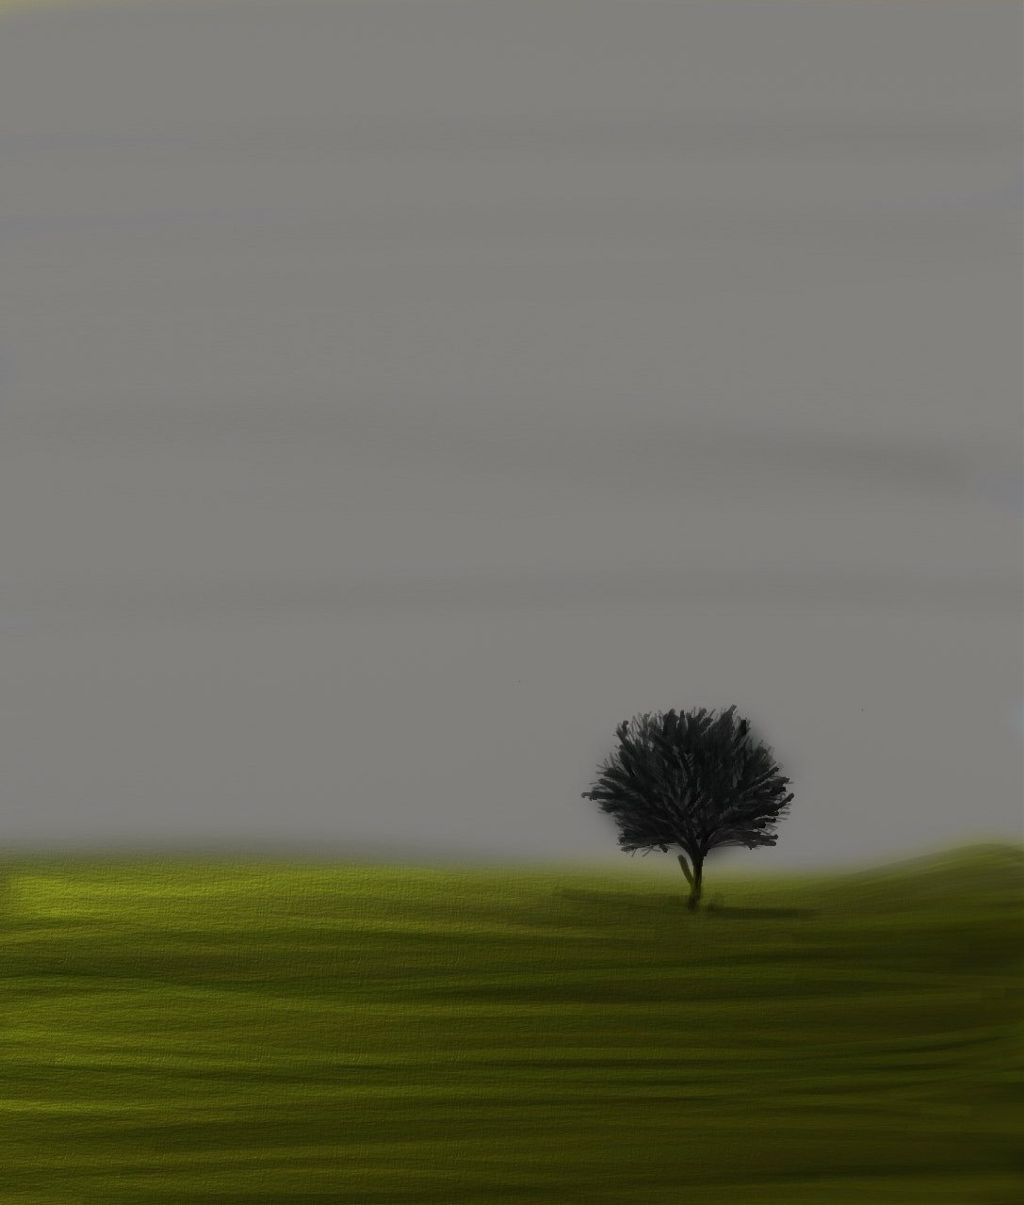 #lonelytree #solo #alone #tree #scenery #openview #green #field #nature #growth #sky #graysky #beauty #bare